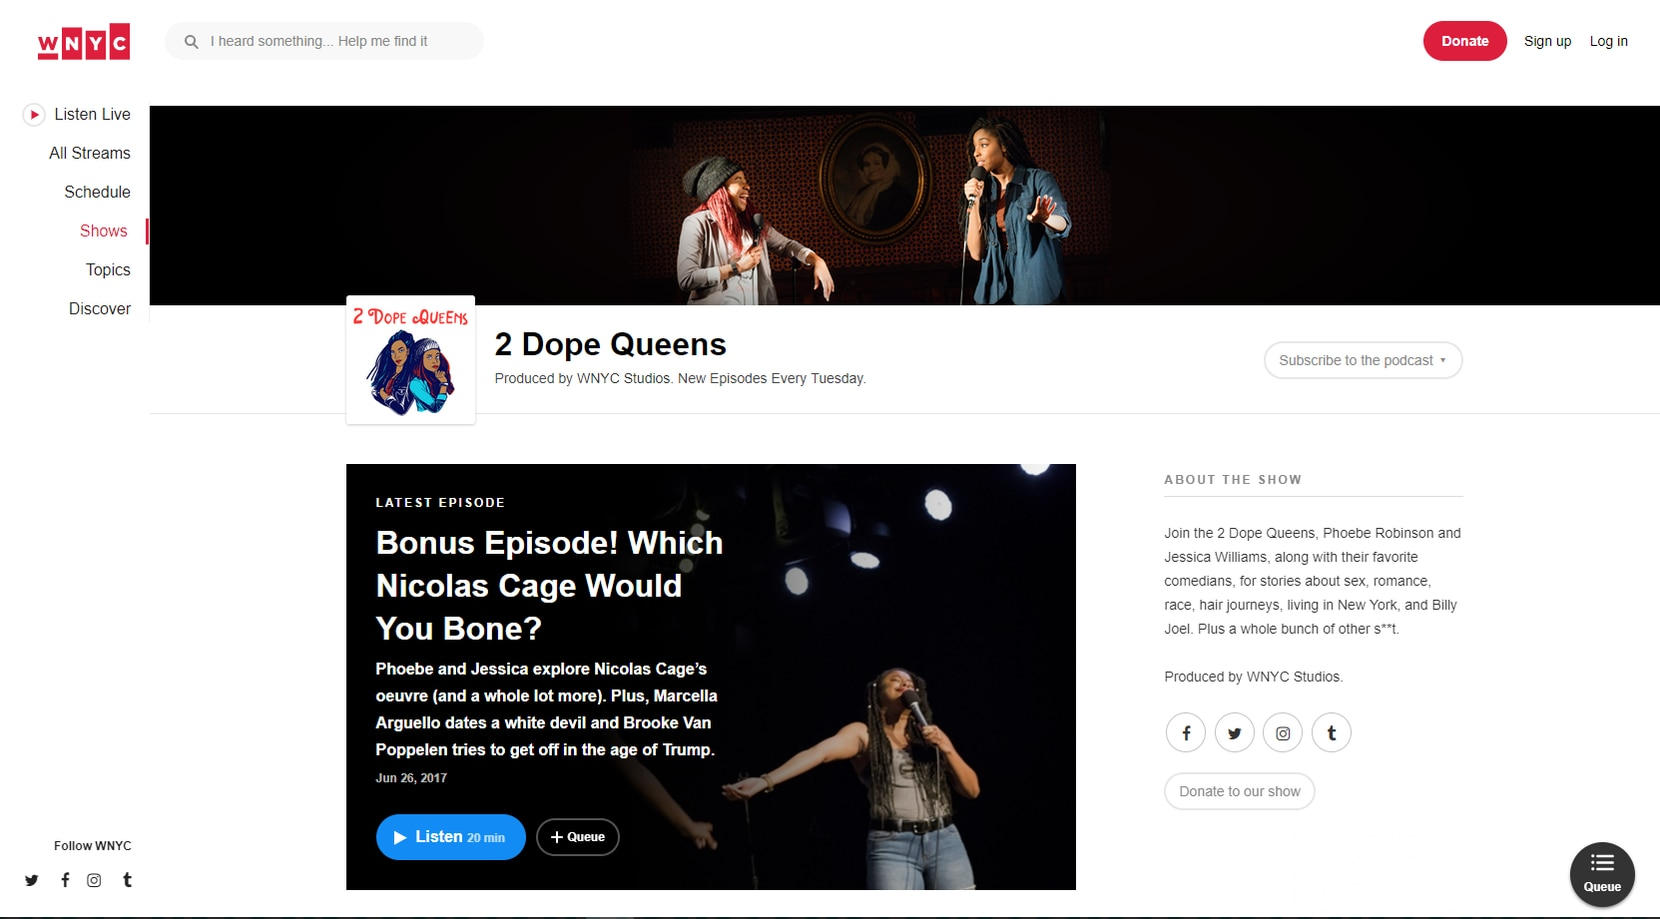 Two Dope Queens podcast website